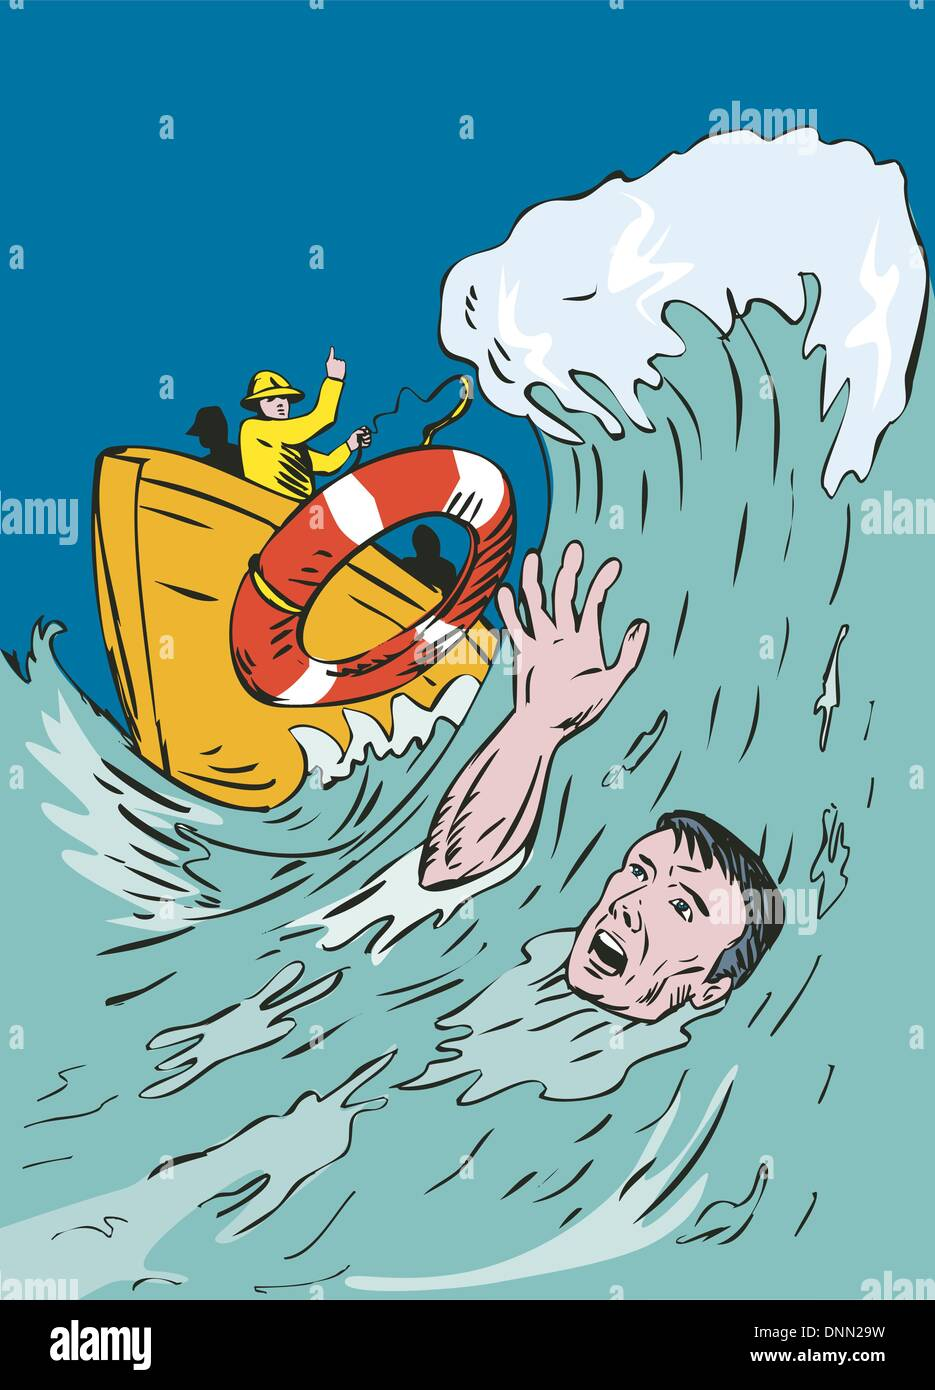 Illustration of man drowning and man rescuing lifeguard done in retro style. - Stock Image